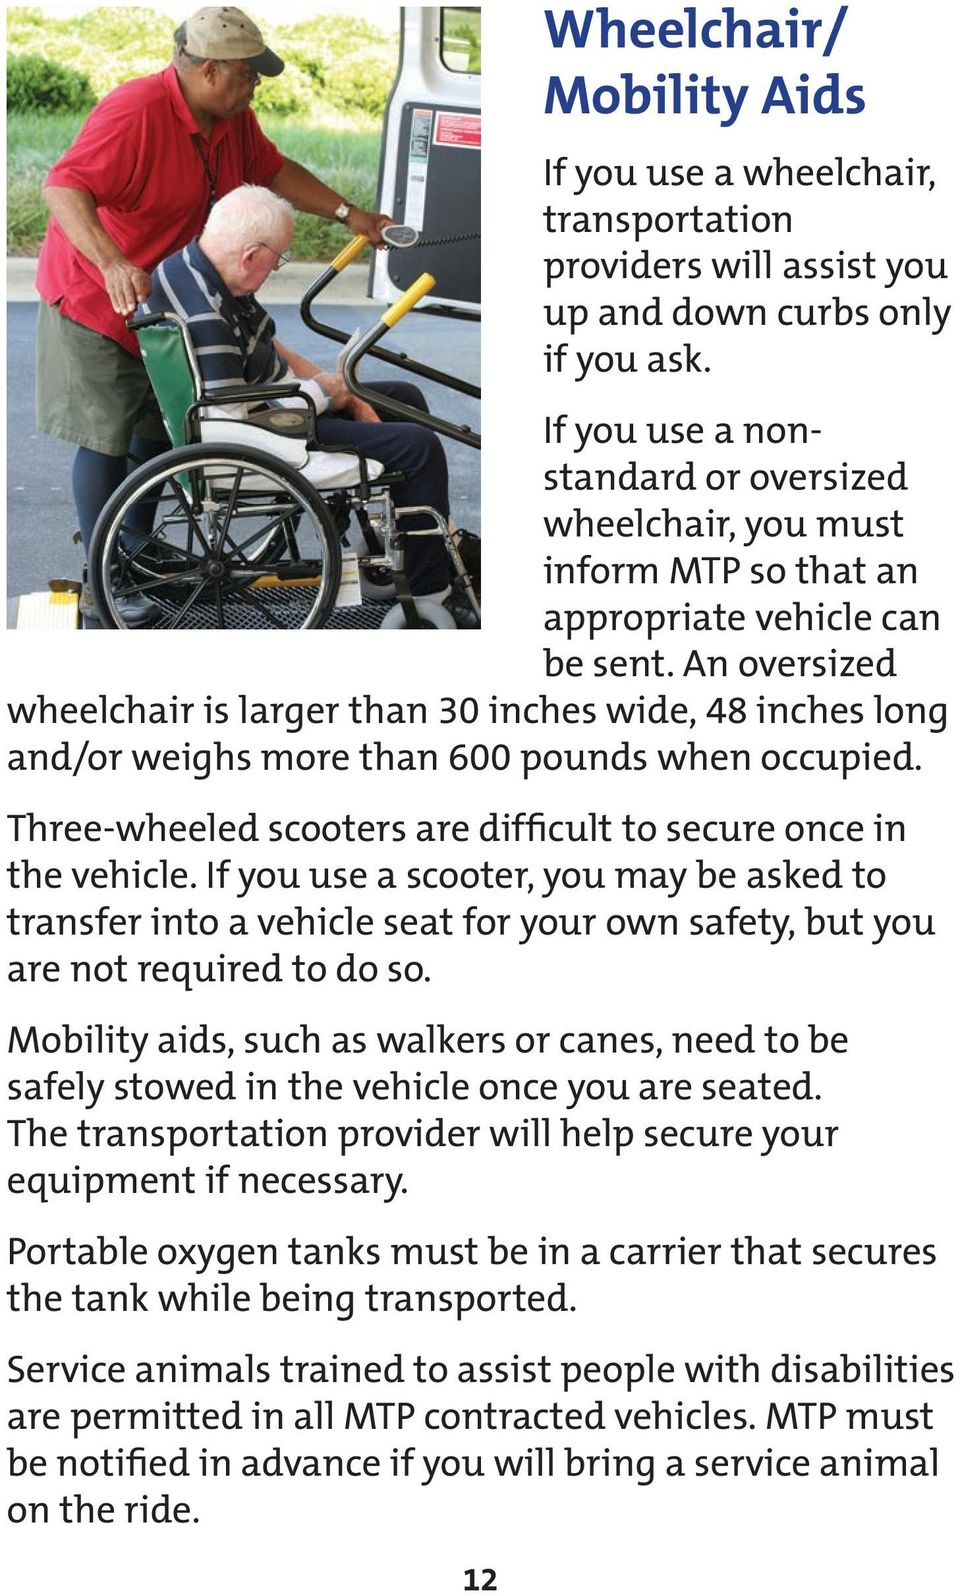 An oversized wheelchair is larger than 30 inches wide, 48 inches long and/or weighs more than 600 pounds when occupied. Three-wheeled scooters are difficult to secure once in the vehicle.